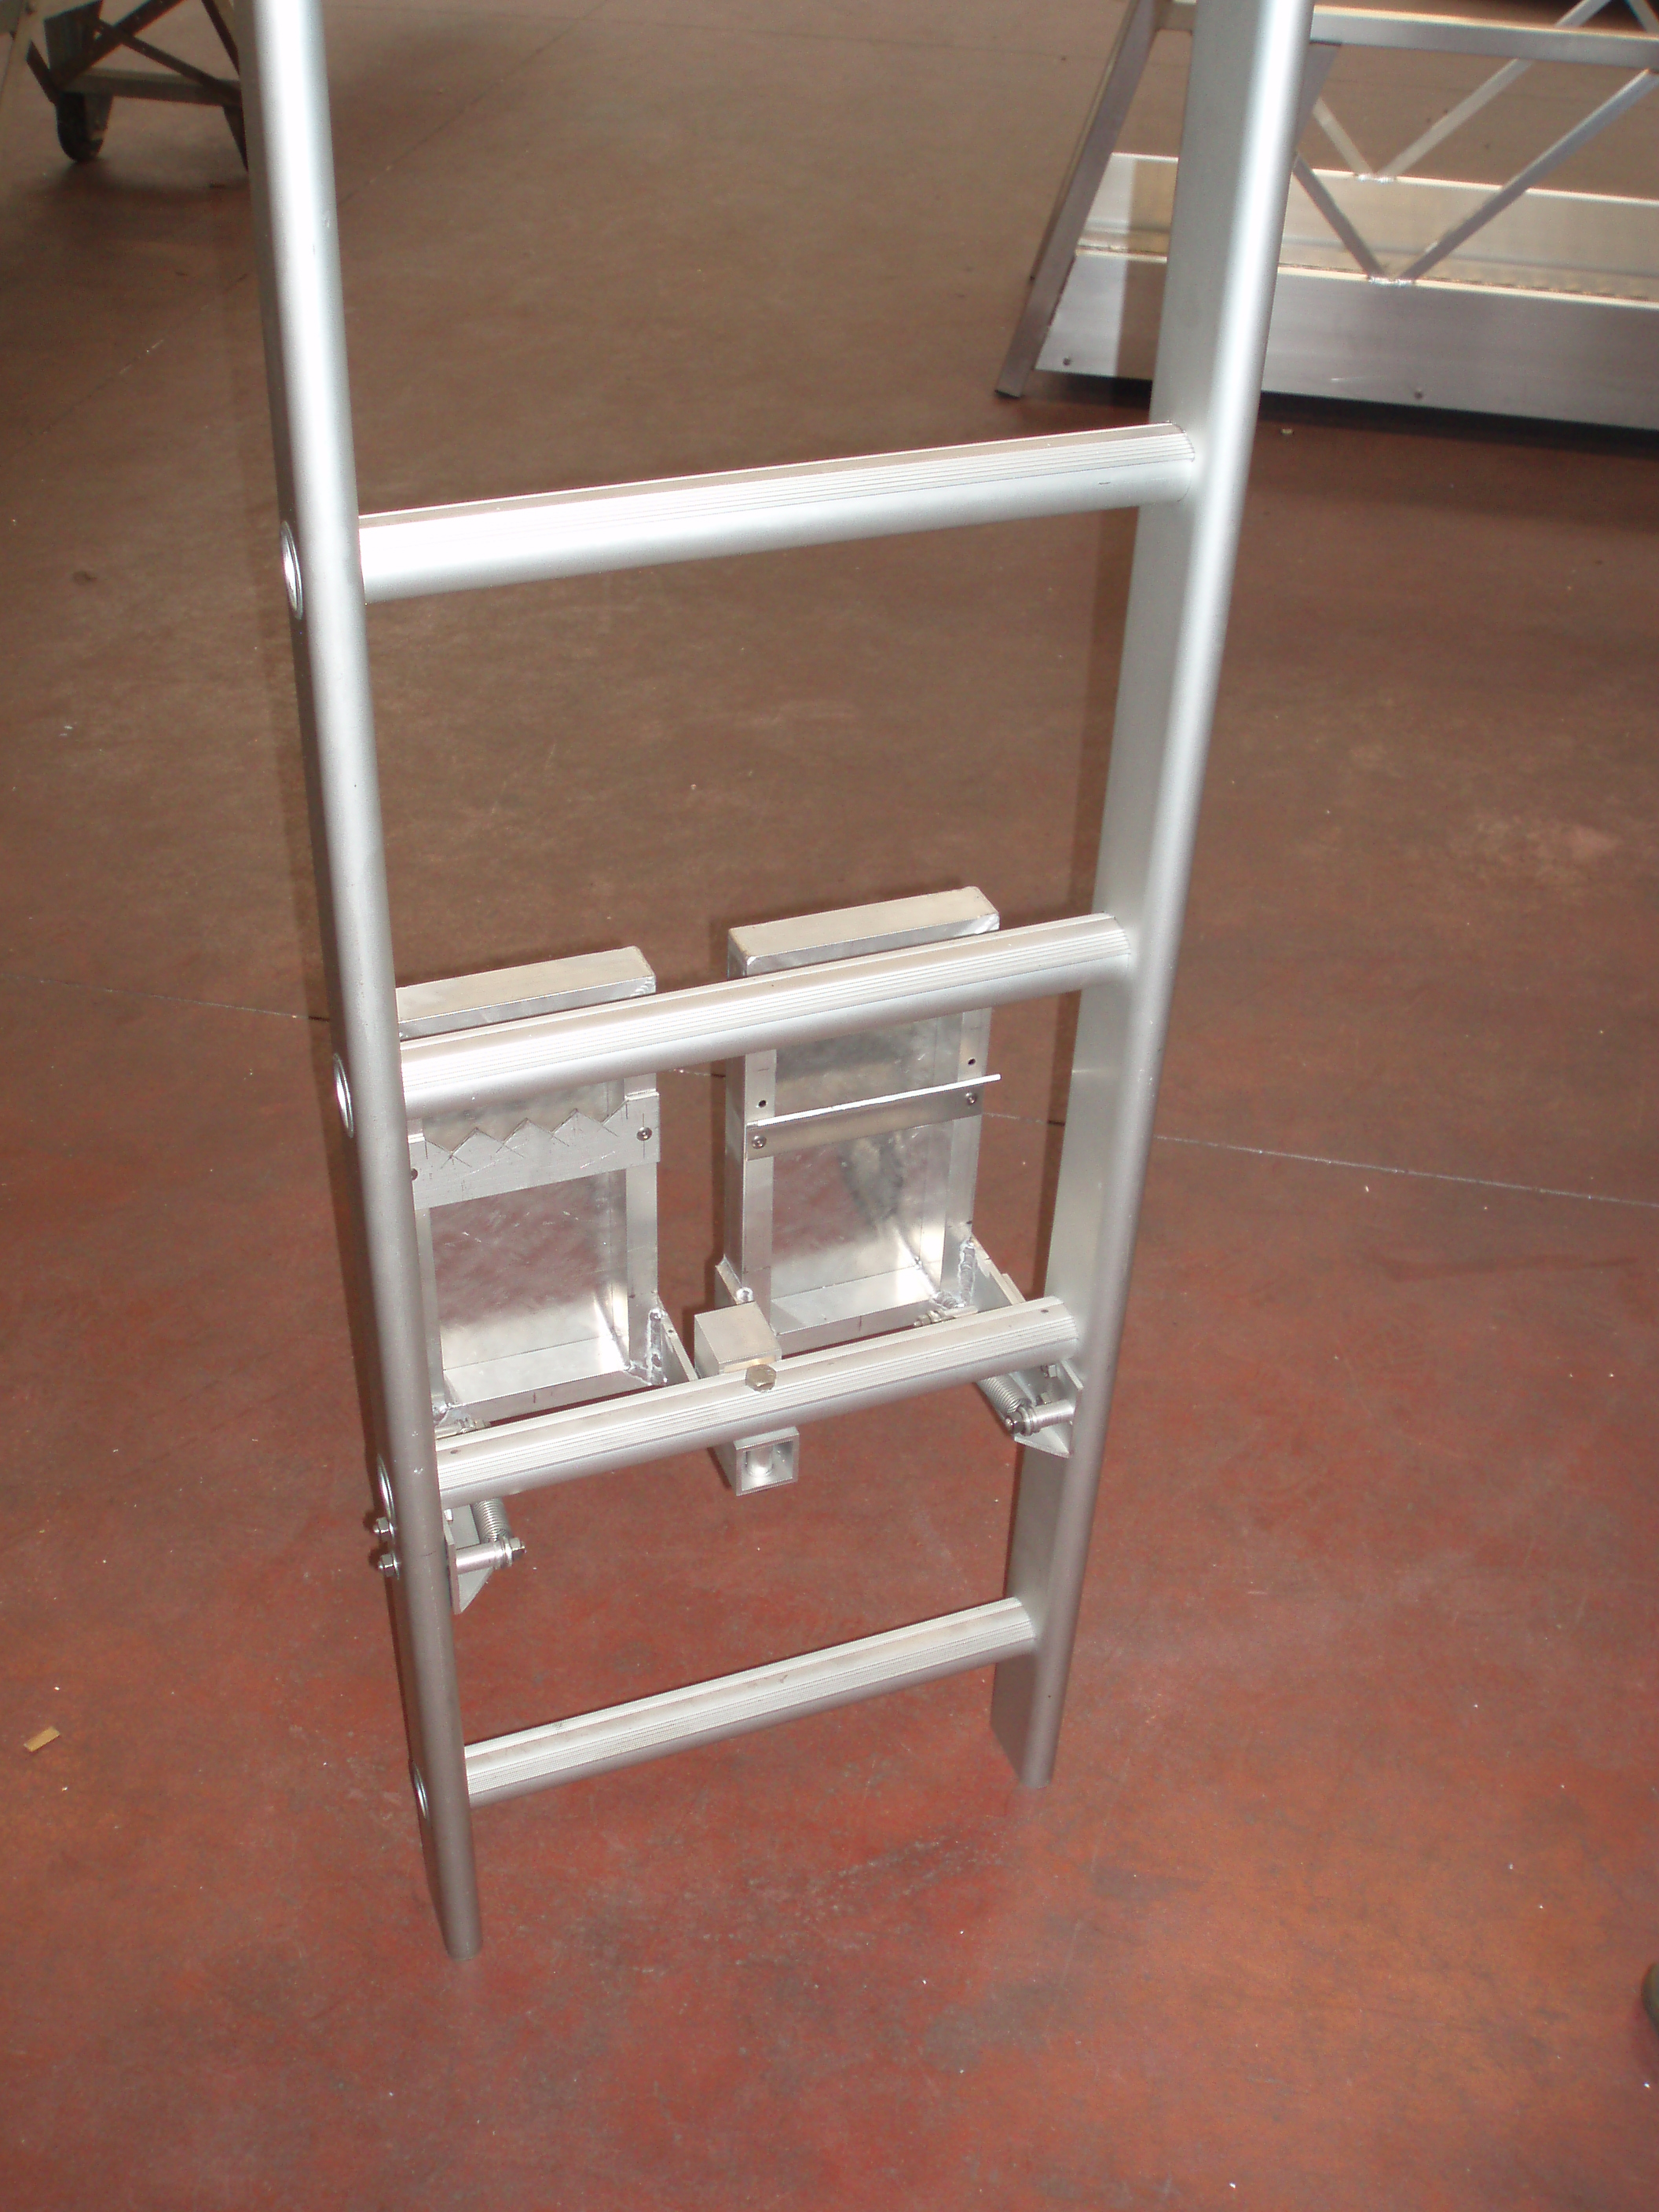 Options for the JOMY fixed ladder in anodized aluminum